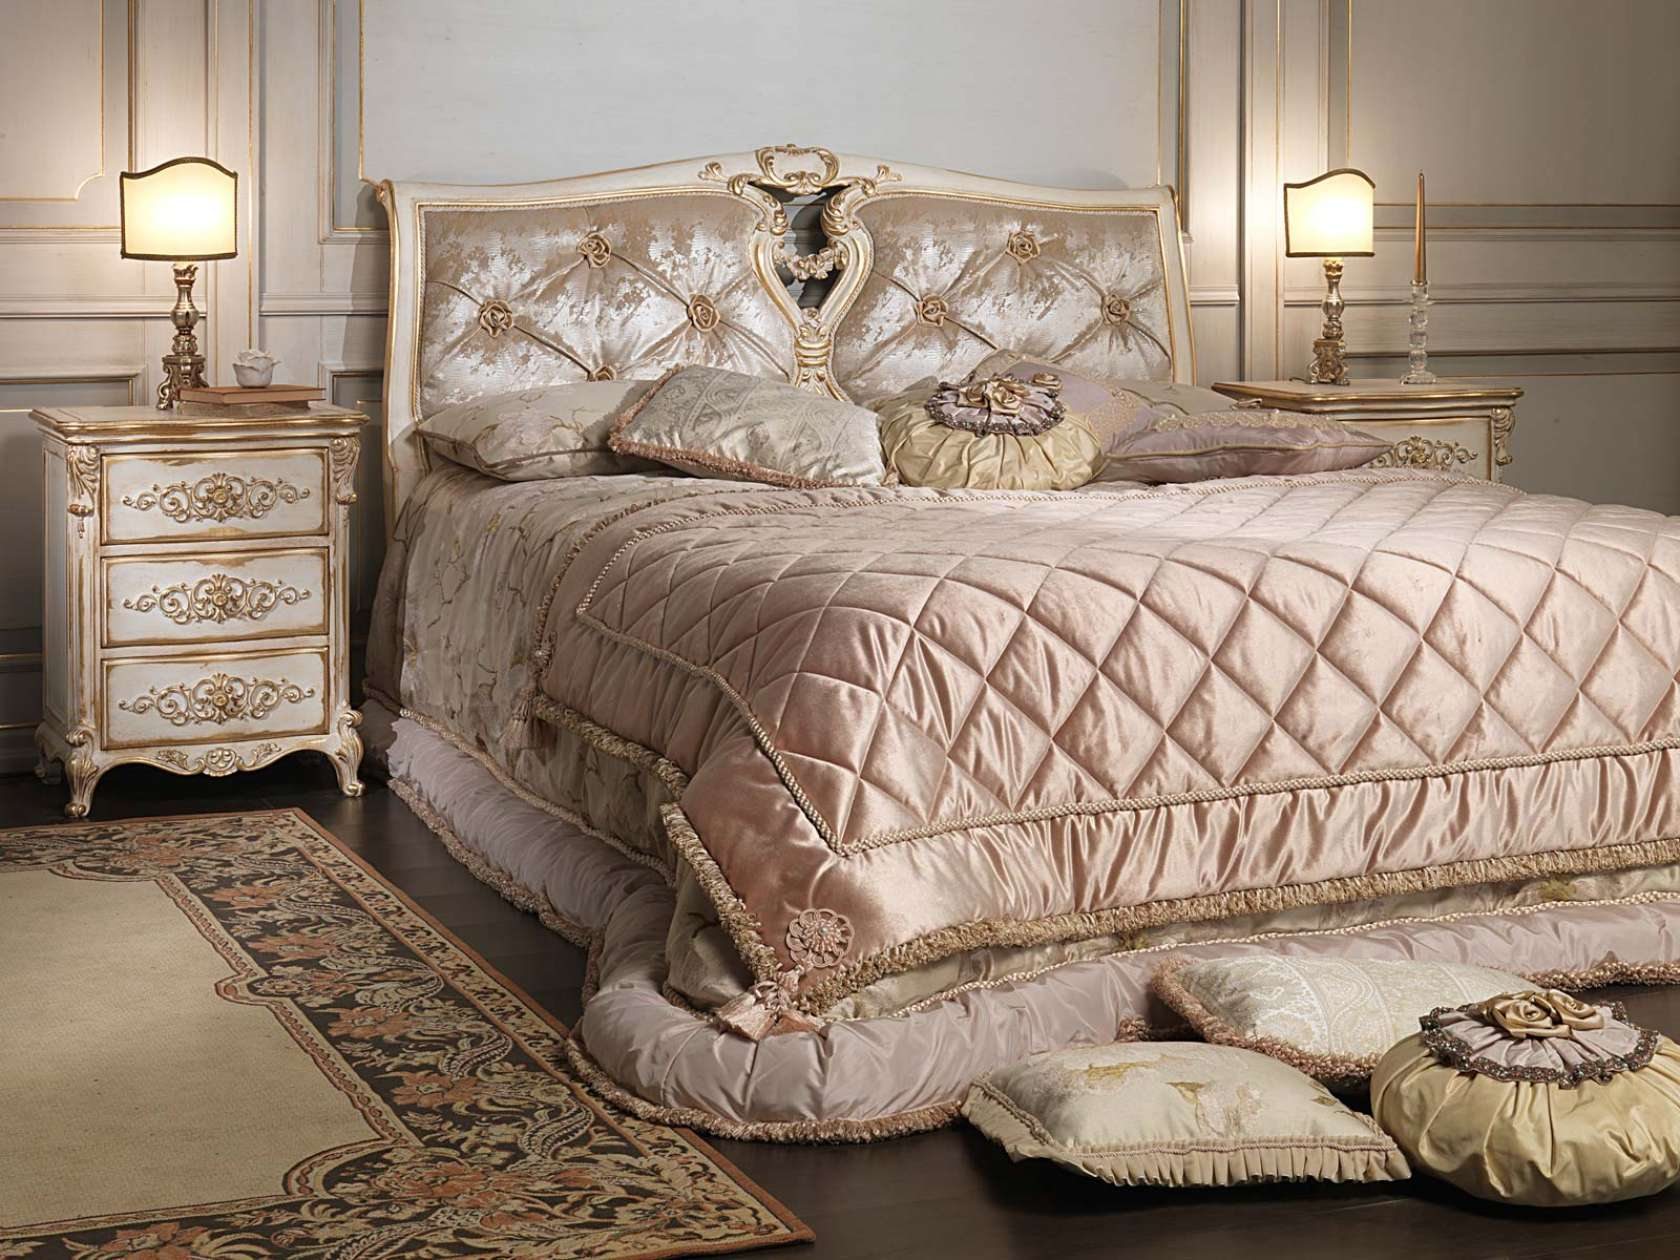 Louis xvi bedroom furniture - Louis Xvi Capitonne Bed